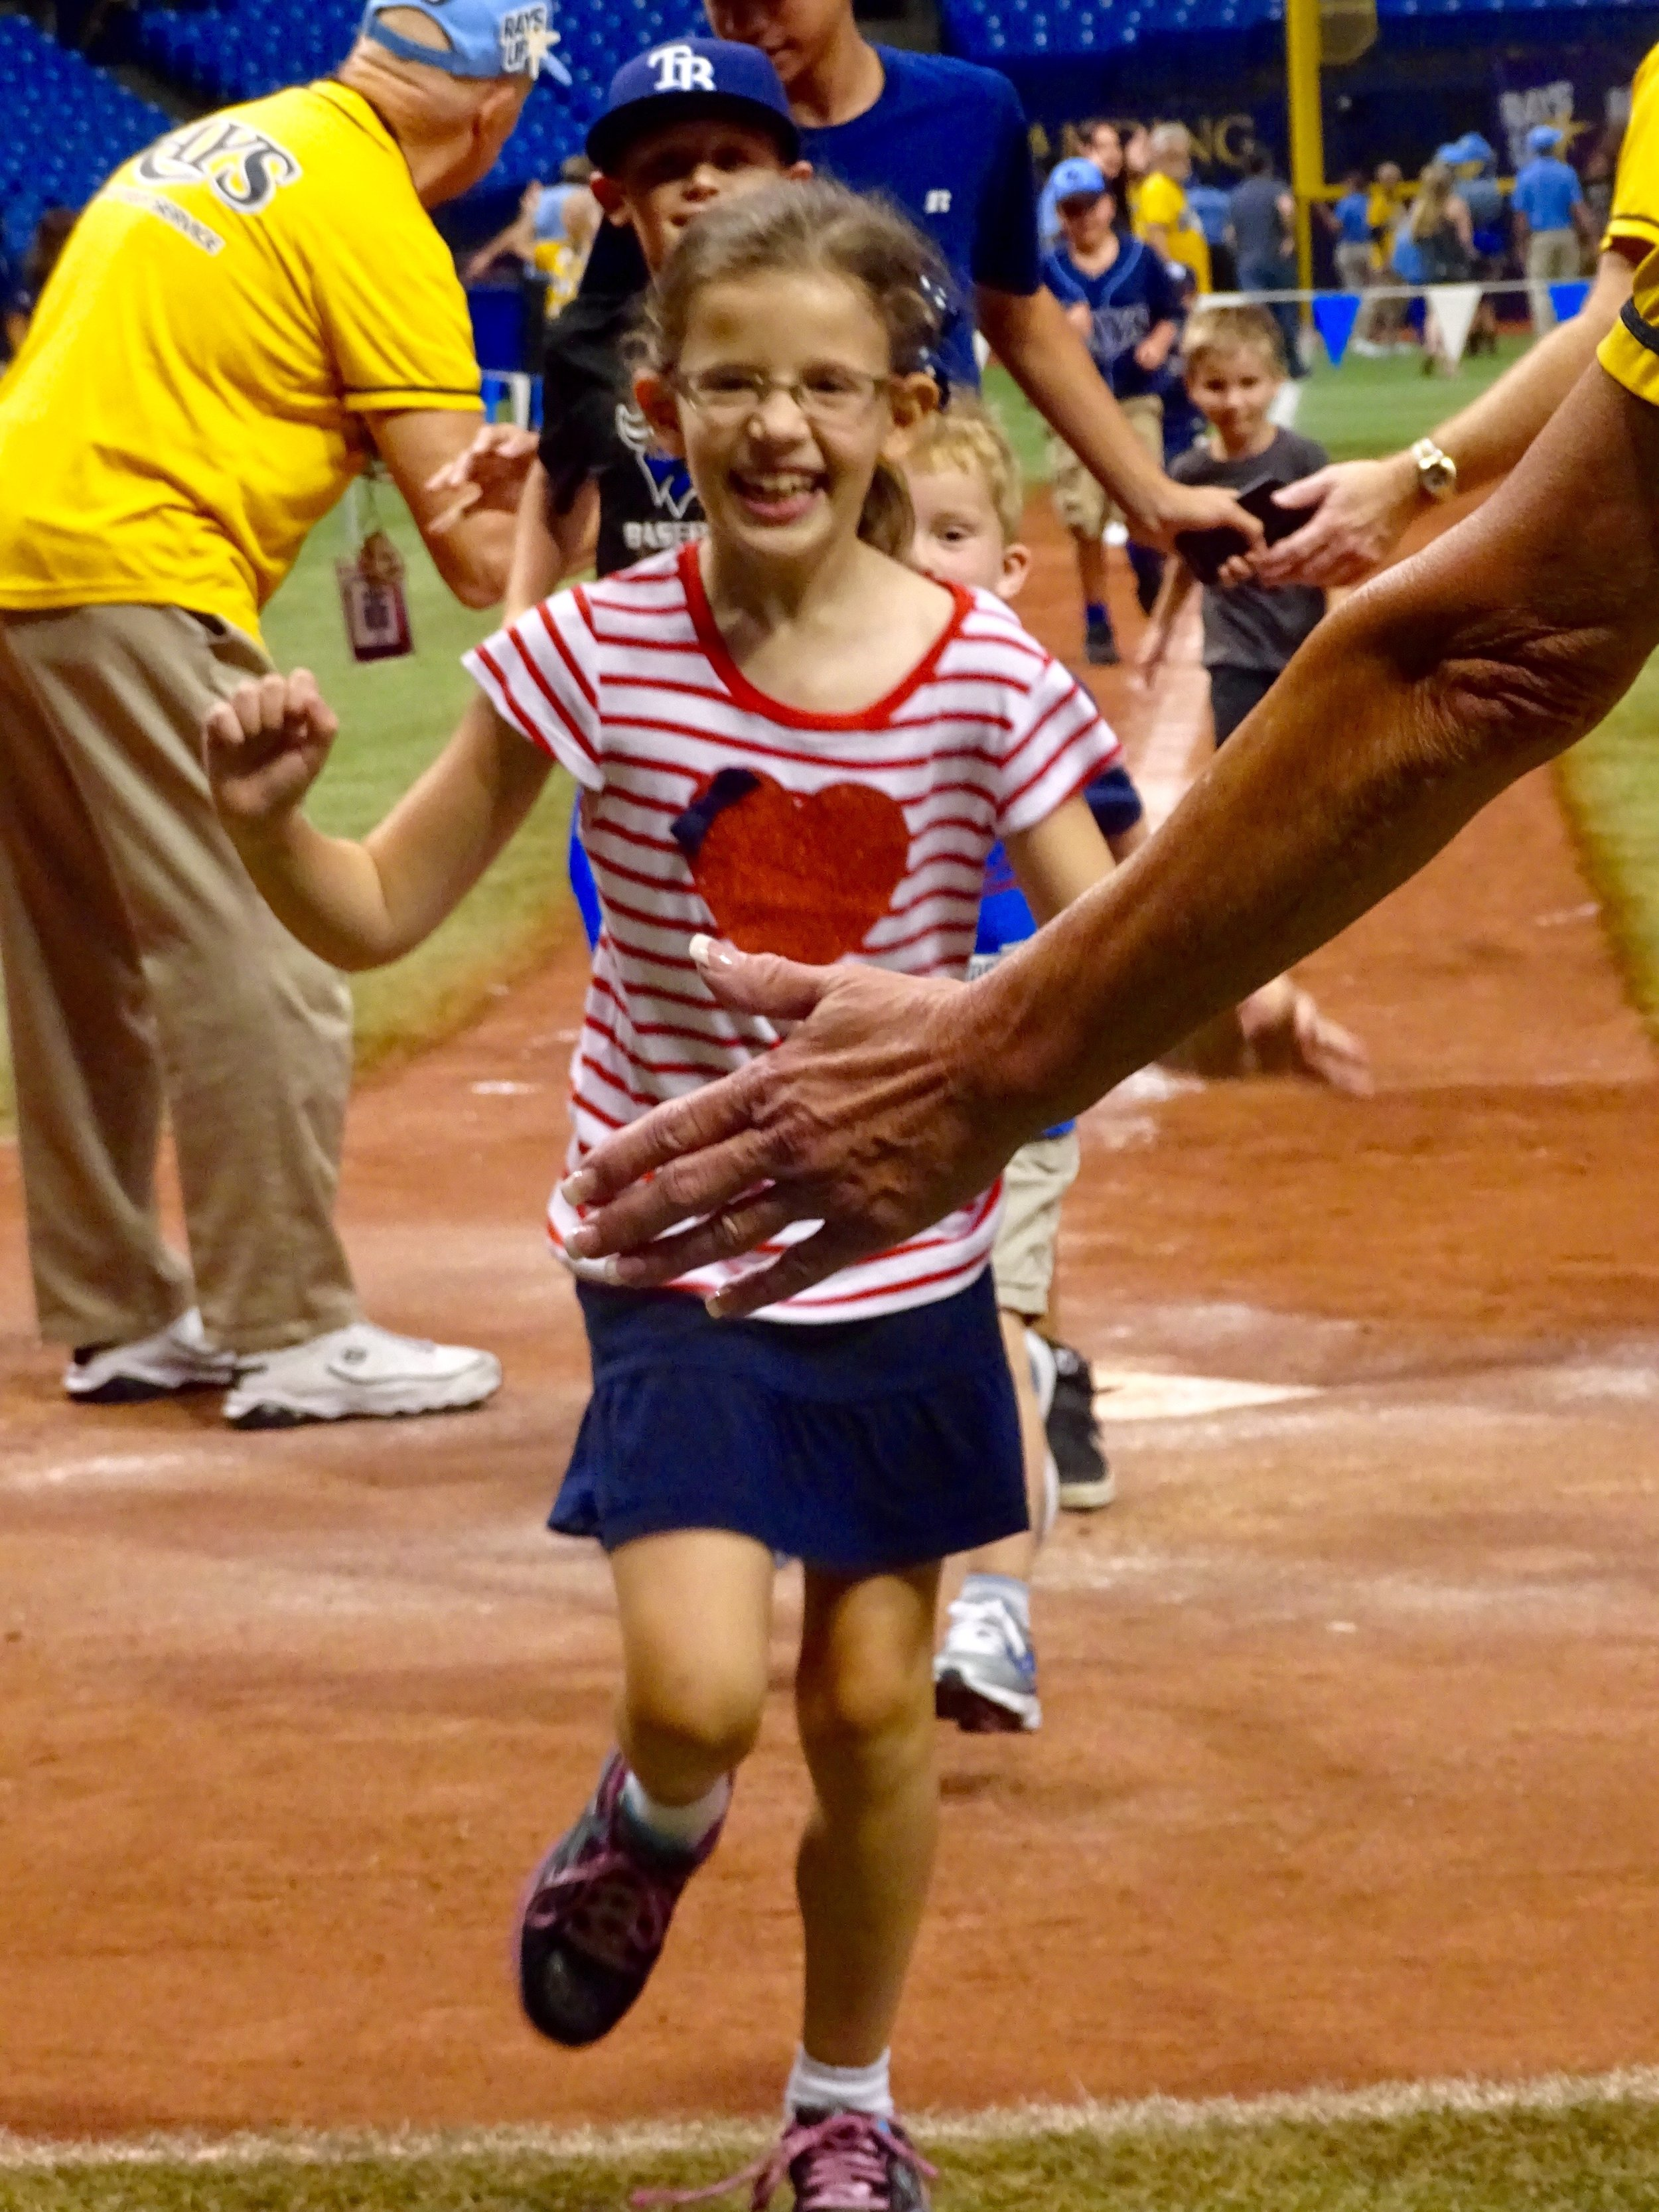 Our daughter running to home plate at Marlins Park in Miami, Florida.